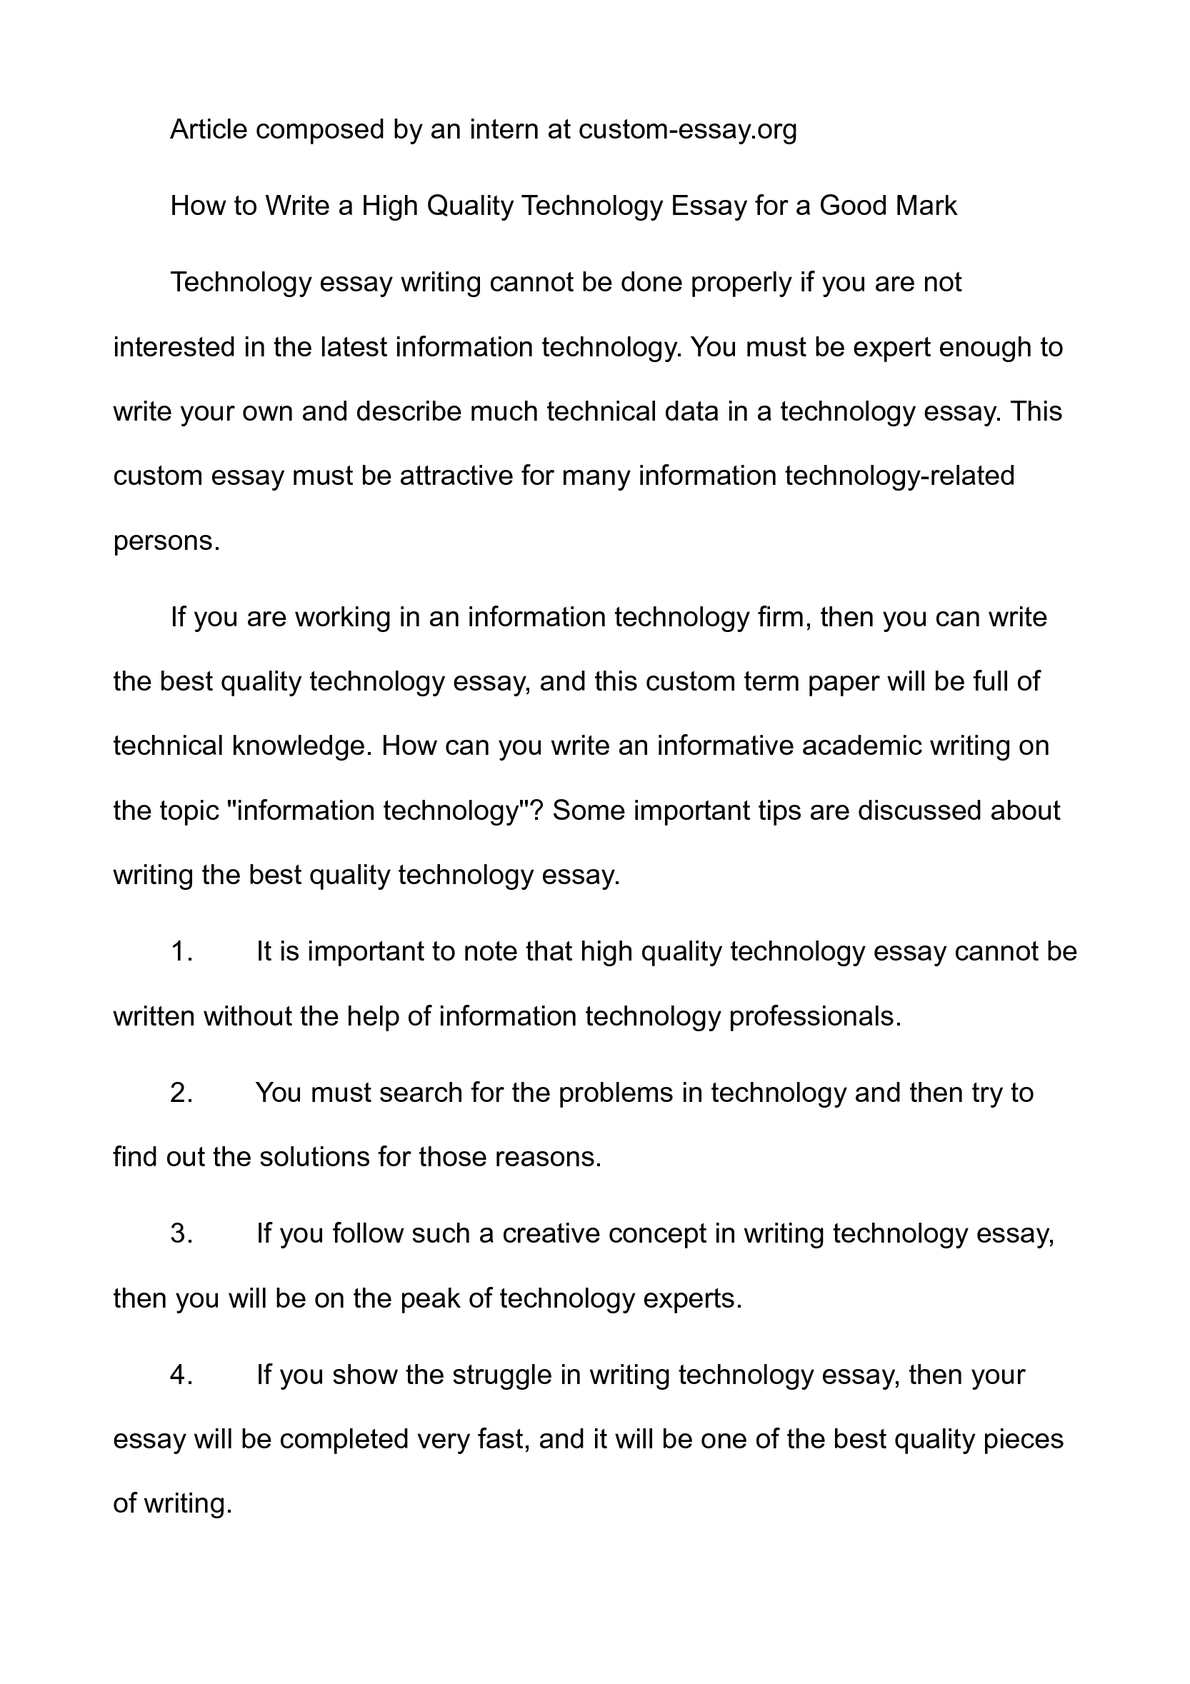 001 P1 Essay On Technology Breathtaking Advancement Reflection In The Classroom Technological Advancements And Their Ill-effects Full